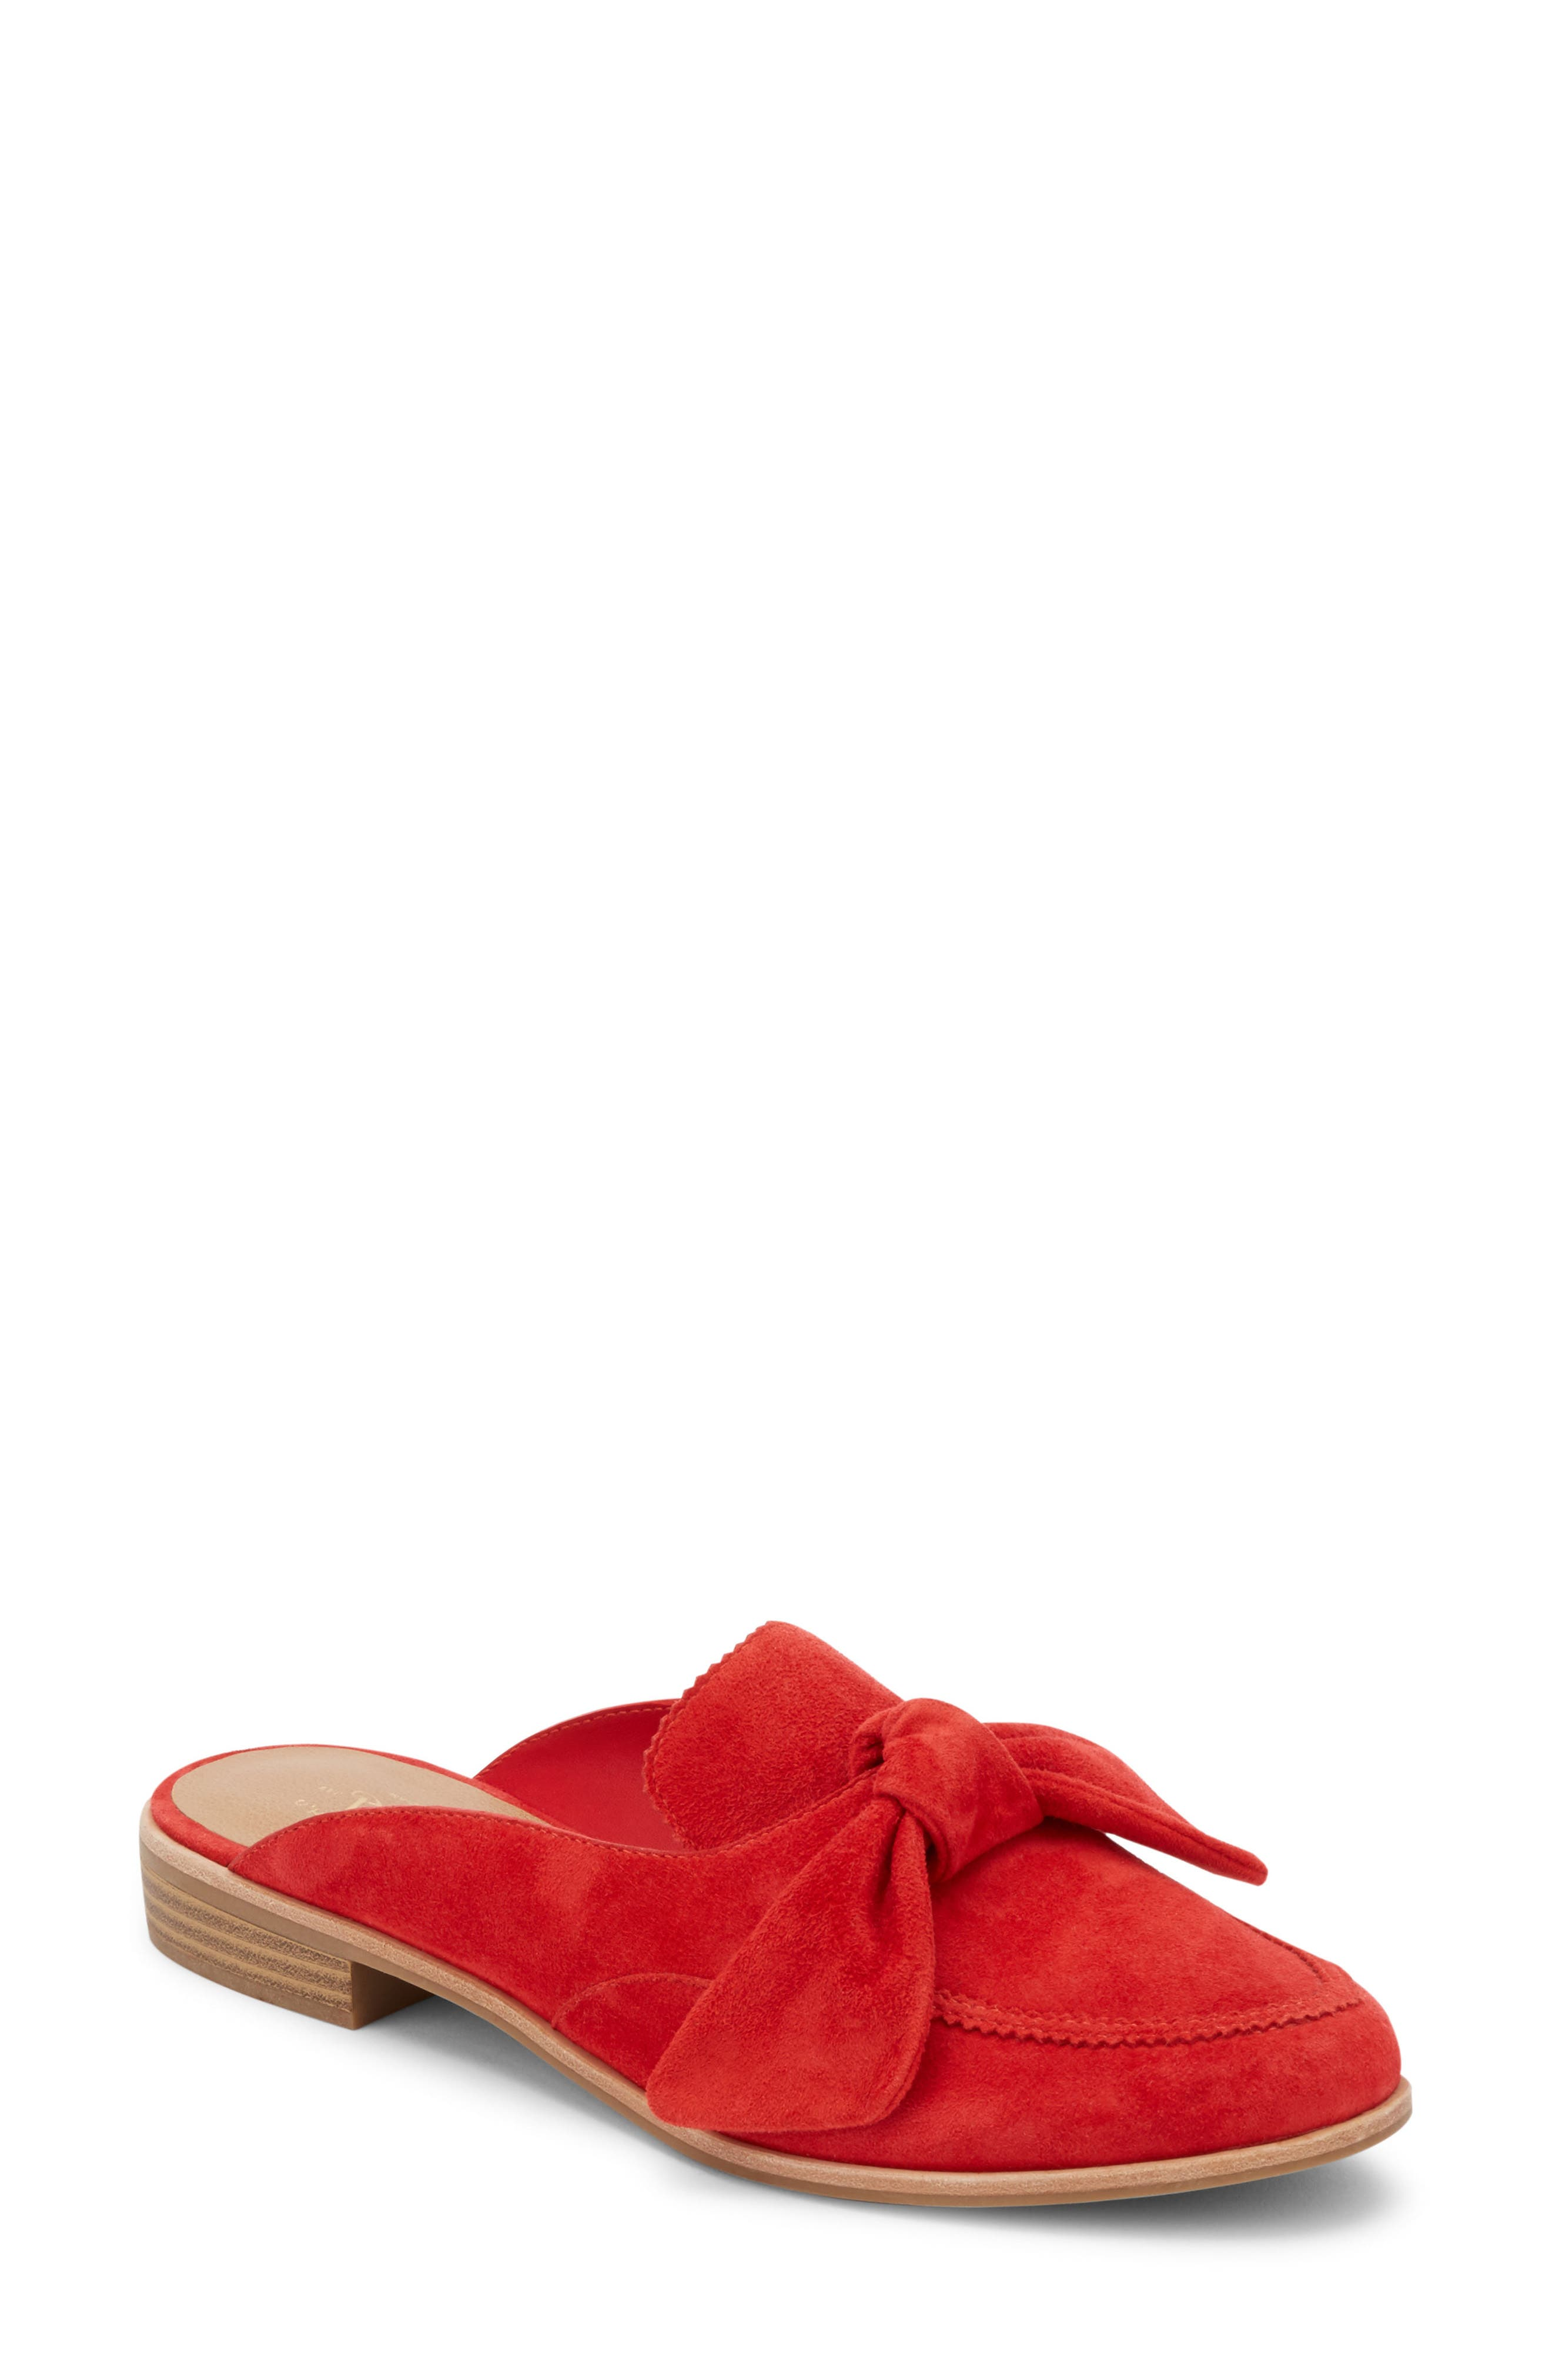 Ebbie Bow Mule,                         Main,                         color, Red Suede